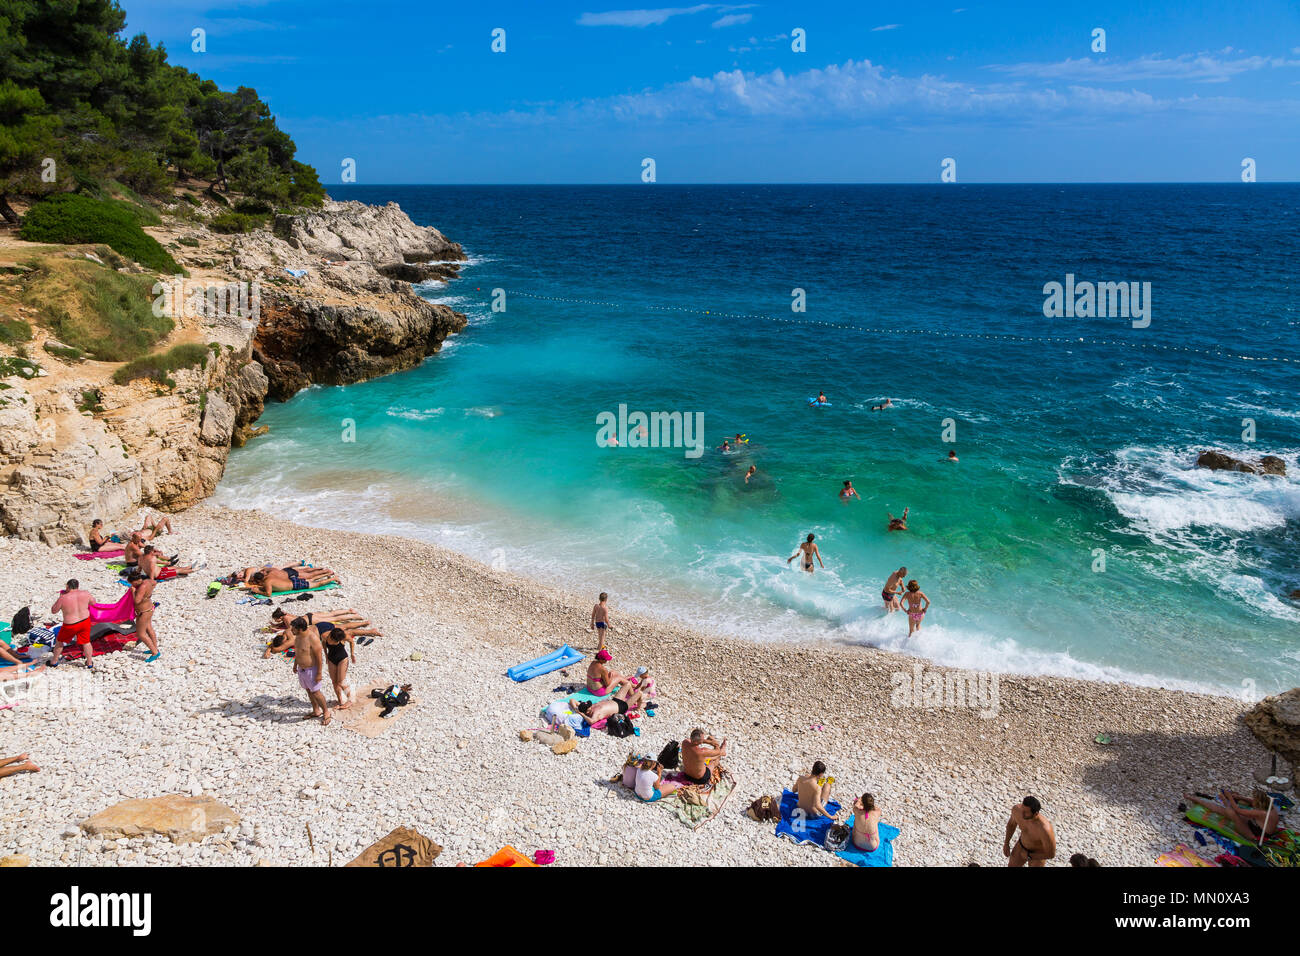 A beach in Pula, Croatia - Stock Image